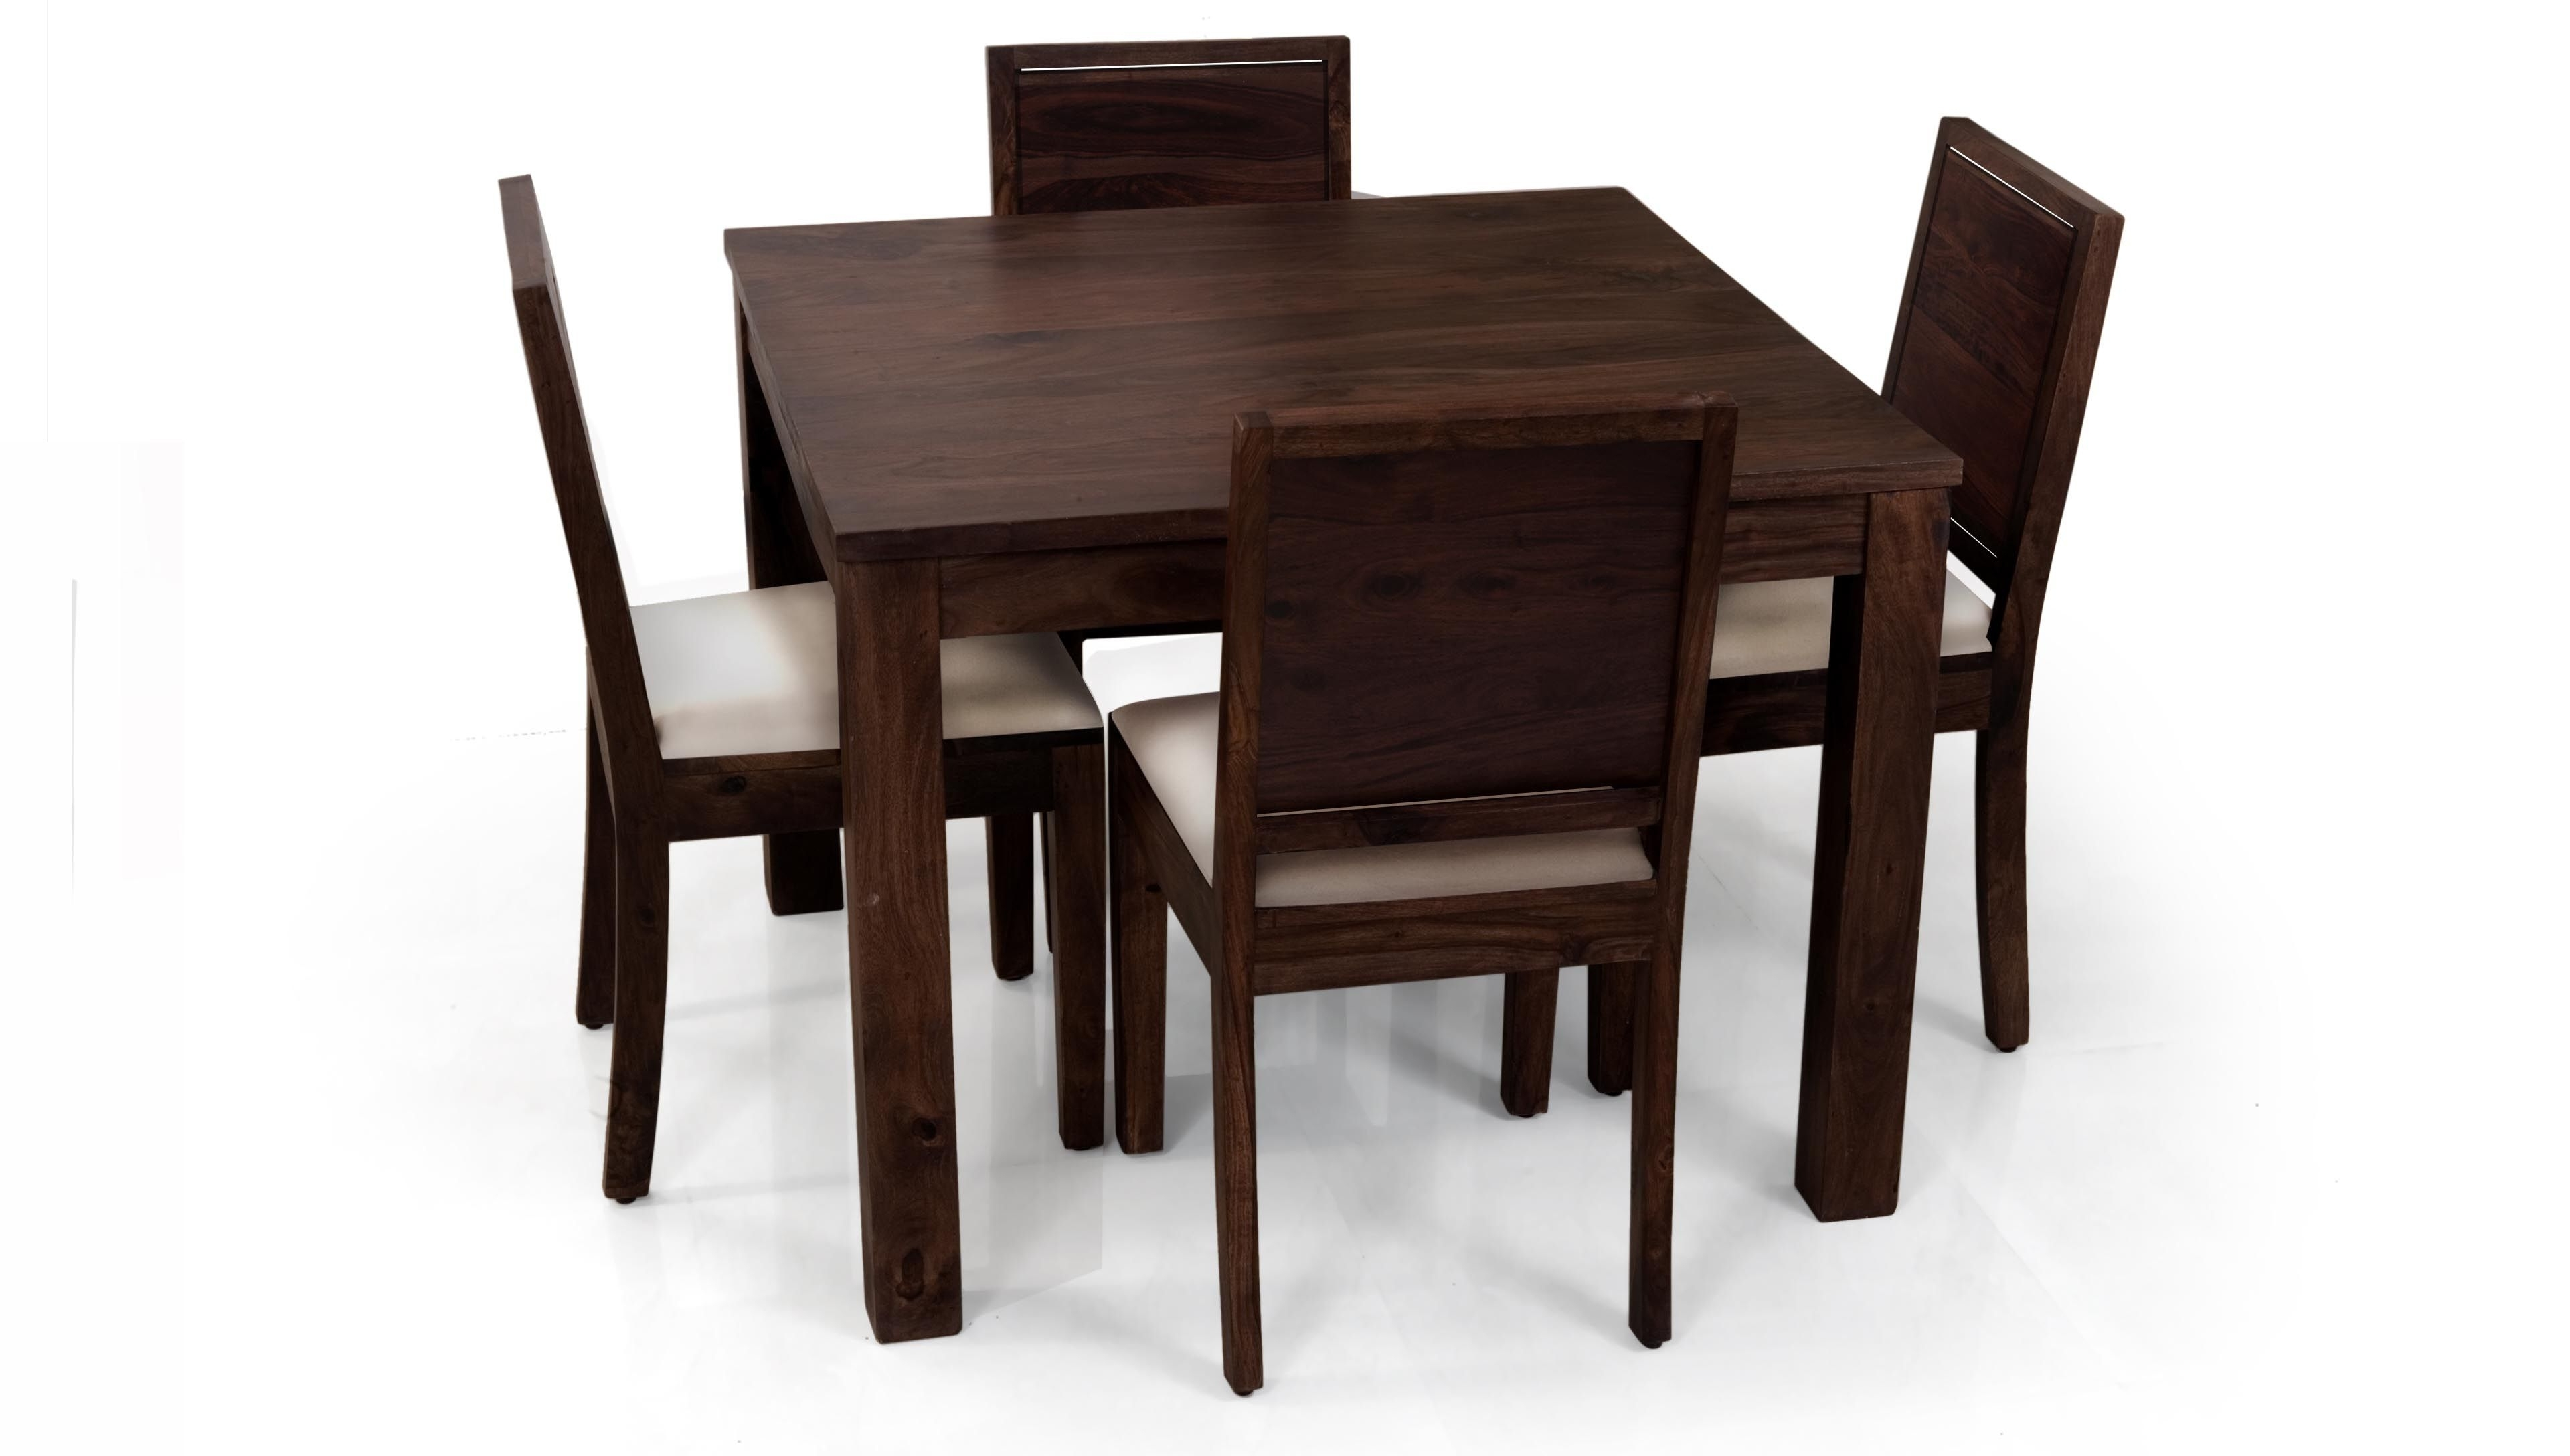 Newest Dark Wood Square Dining Tables Intended For And Decor Your Dining Room With Awesome Design Ever Every Table (View 4 of 25)